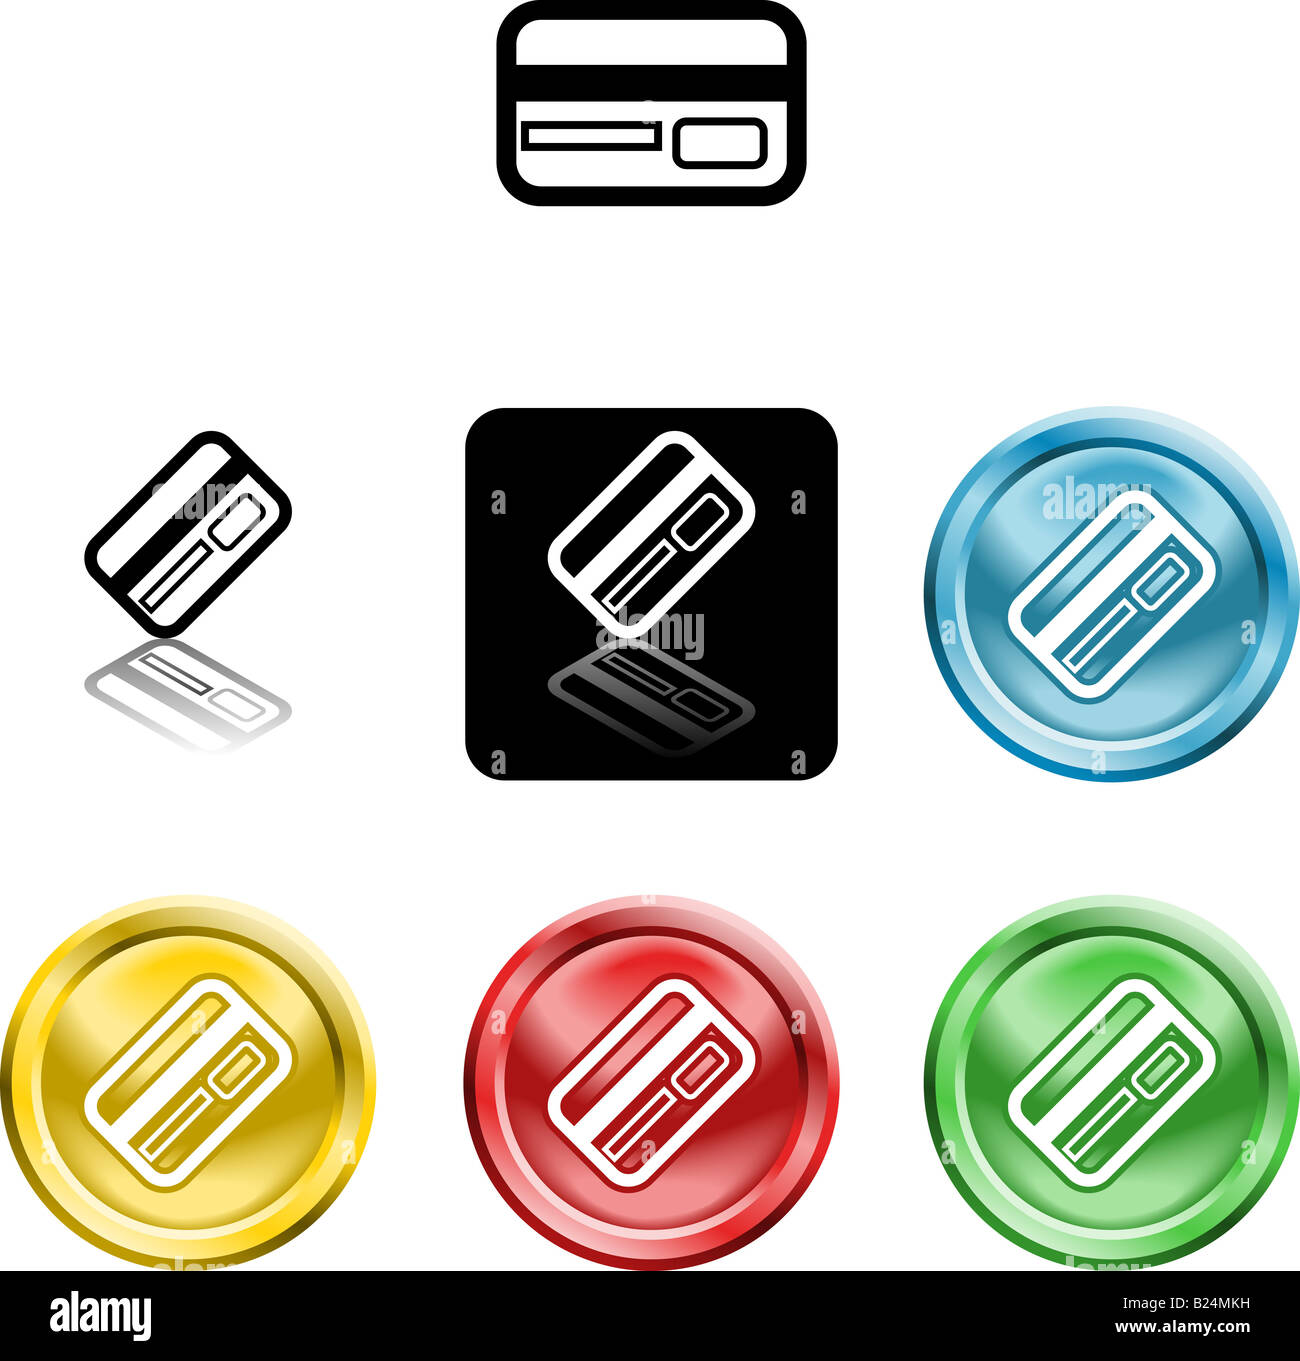 Several versions of an icon symbol of a stylised credit or debit card - Stock Image